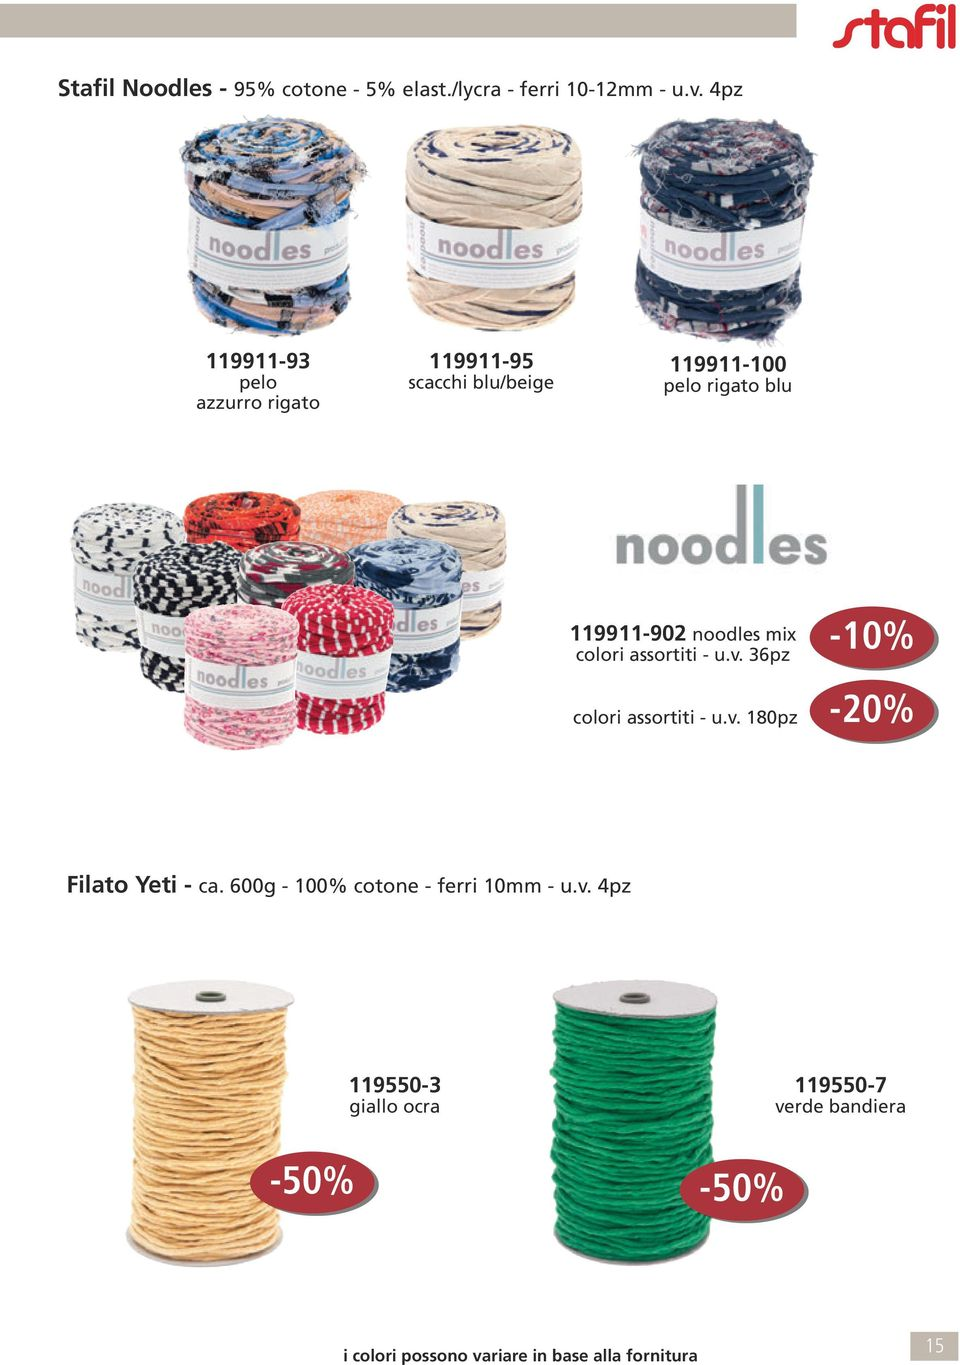 noodles mix colori assortiti - u.v. 36pz colori assortiti - u.v. 180pz -10% -20% Filato Yeti - ca.